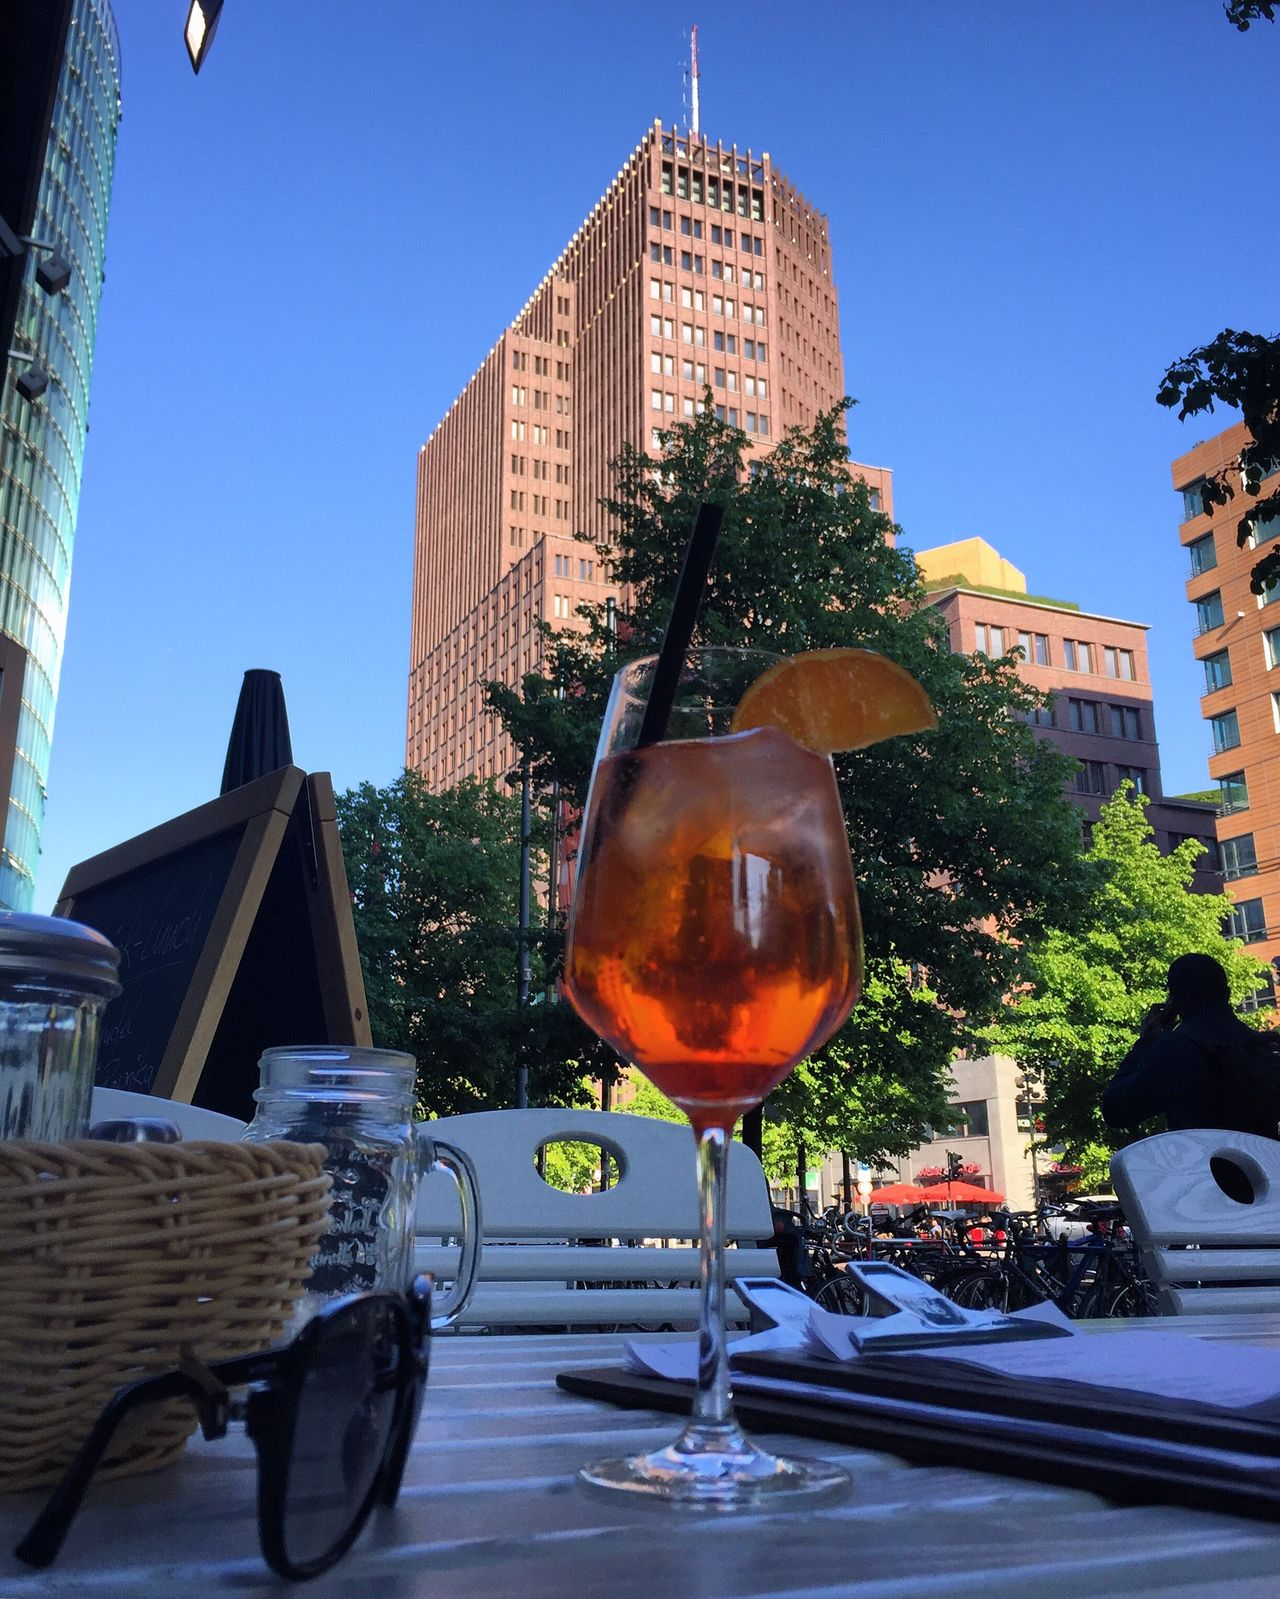 Aperol in Berlin Potsdamer Platz Architecture Building Exterior Built Structure Outdoors No People Clear Sky Tree Land Vehicle Day City Sky Freshness Berlin Photography Potsdamer Platz Aperol Spritz Spring